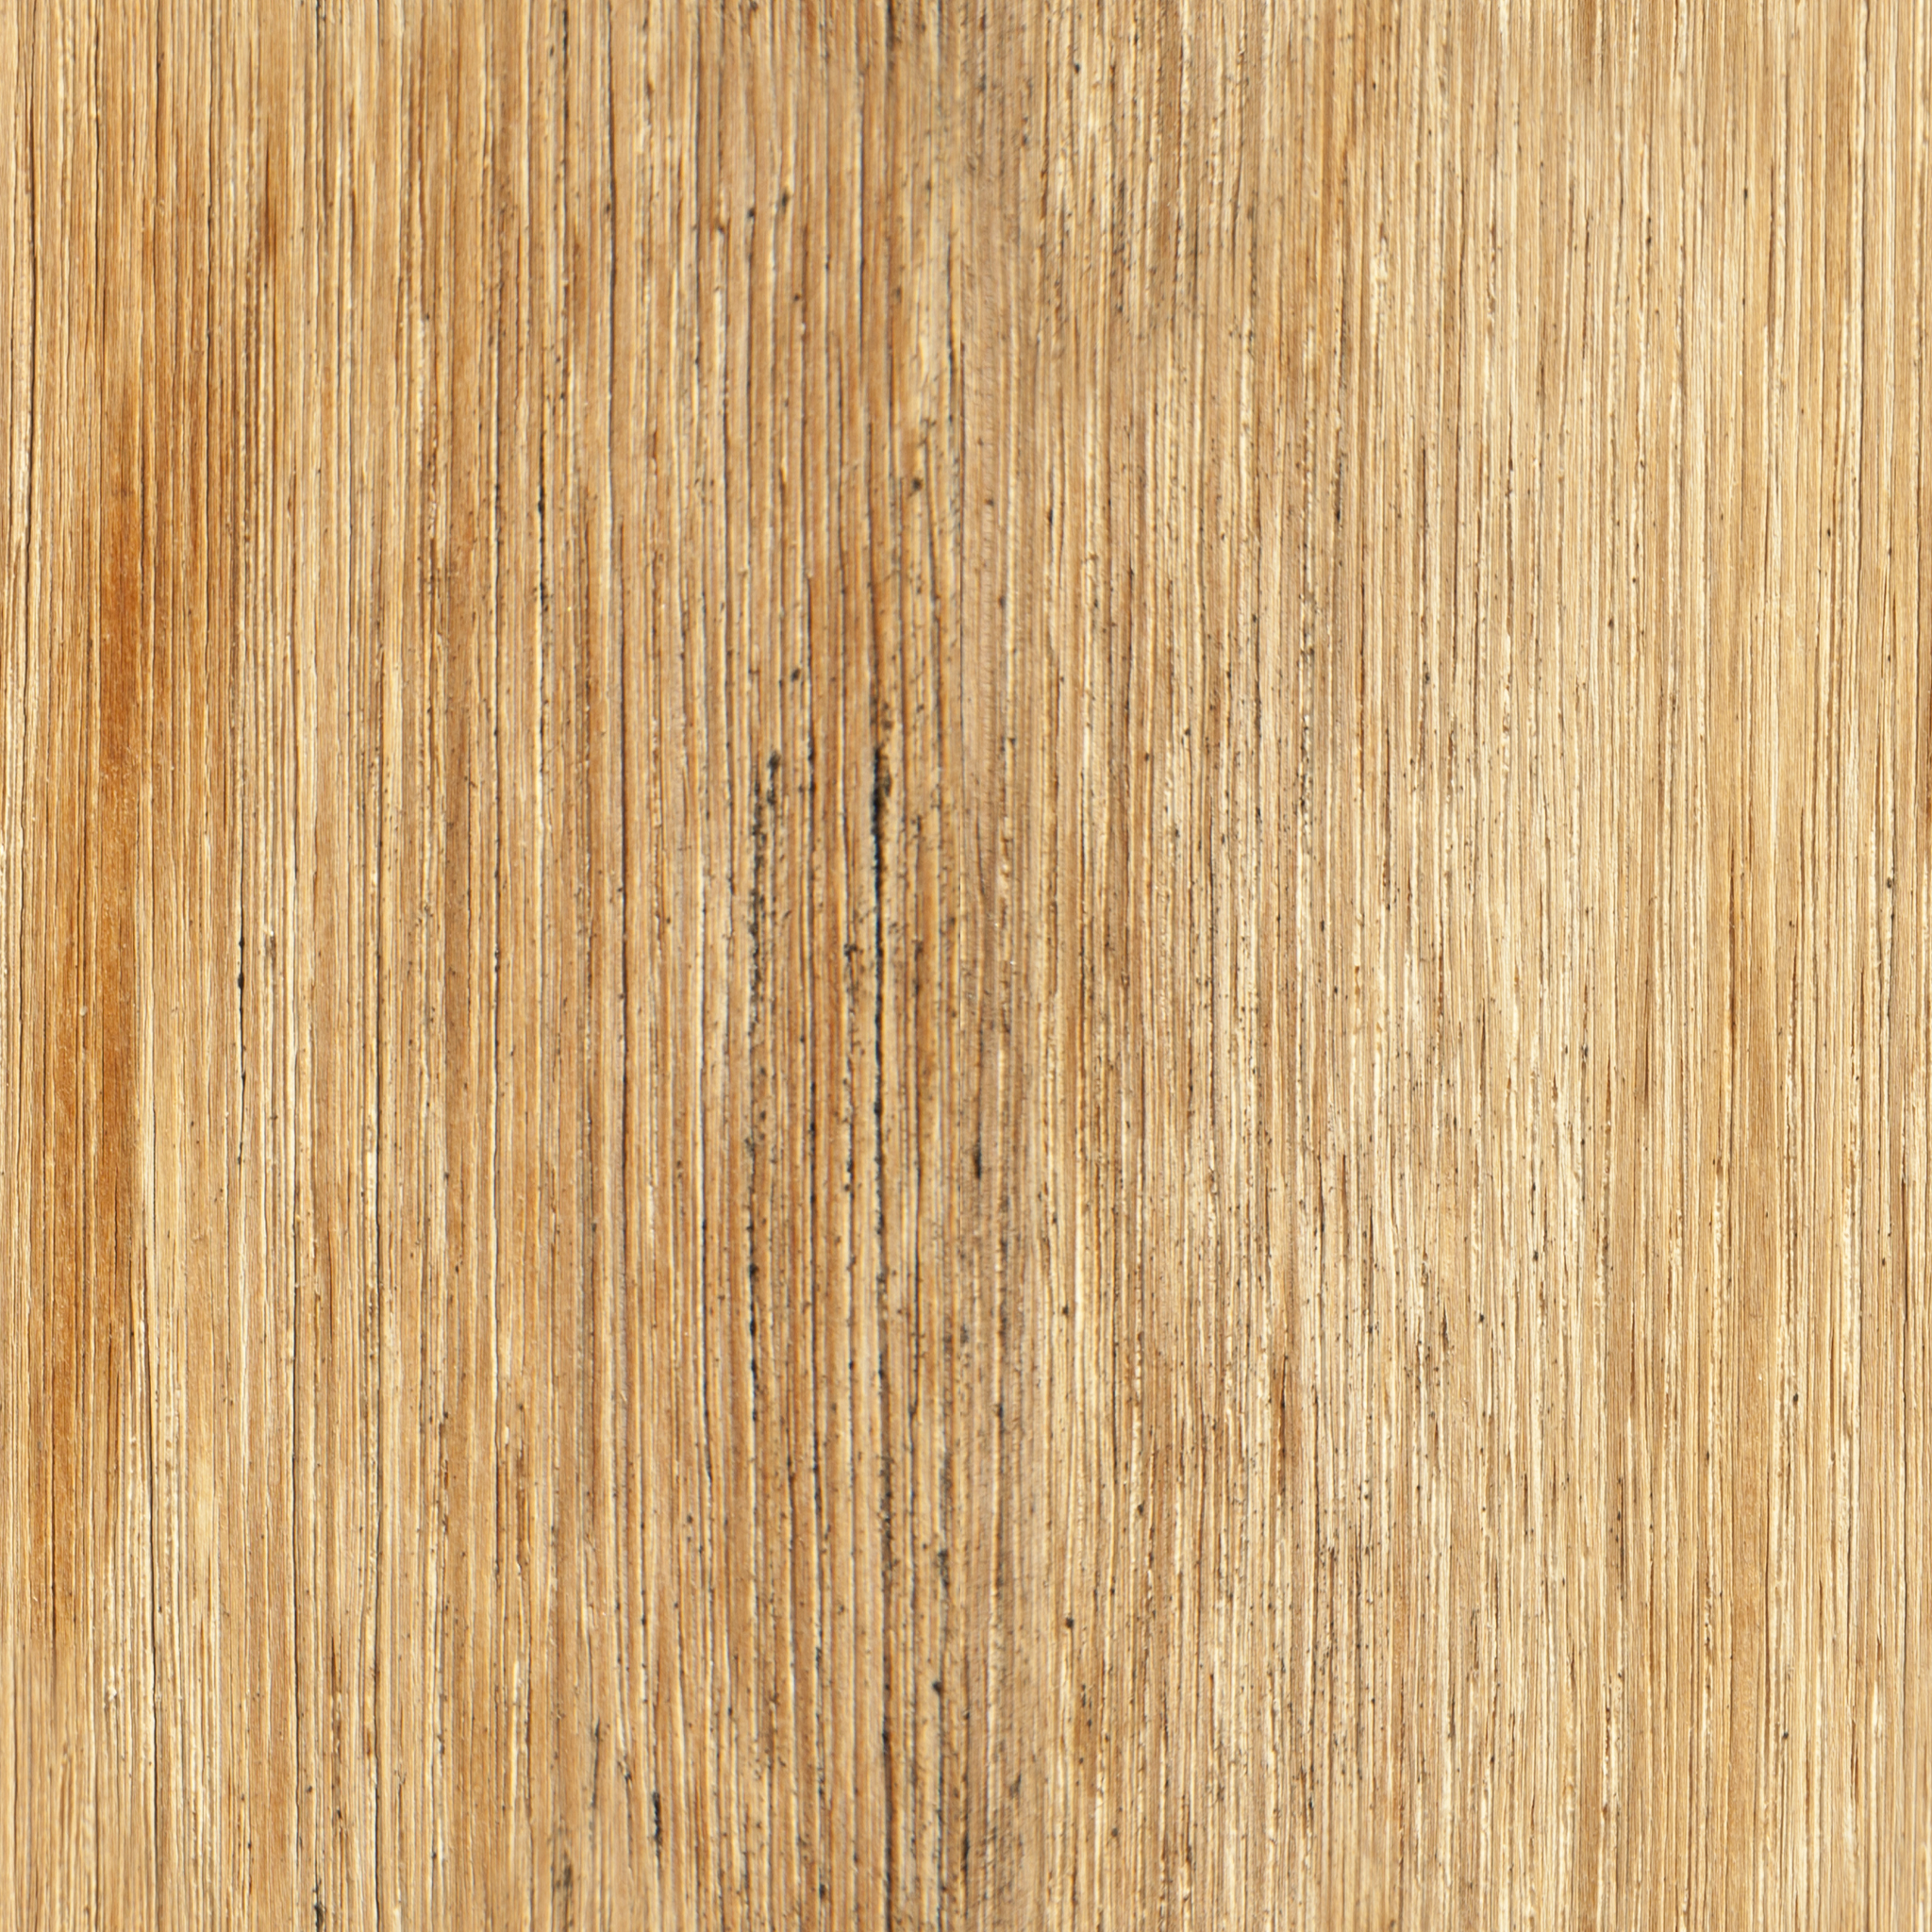 Aged Natural Brown Wood.jpg